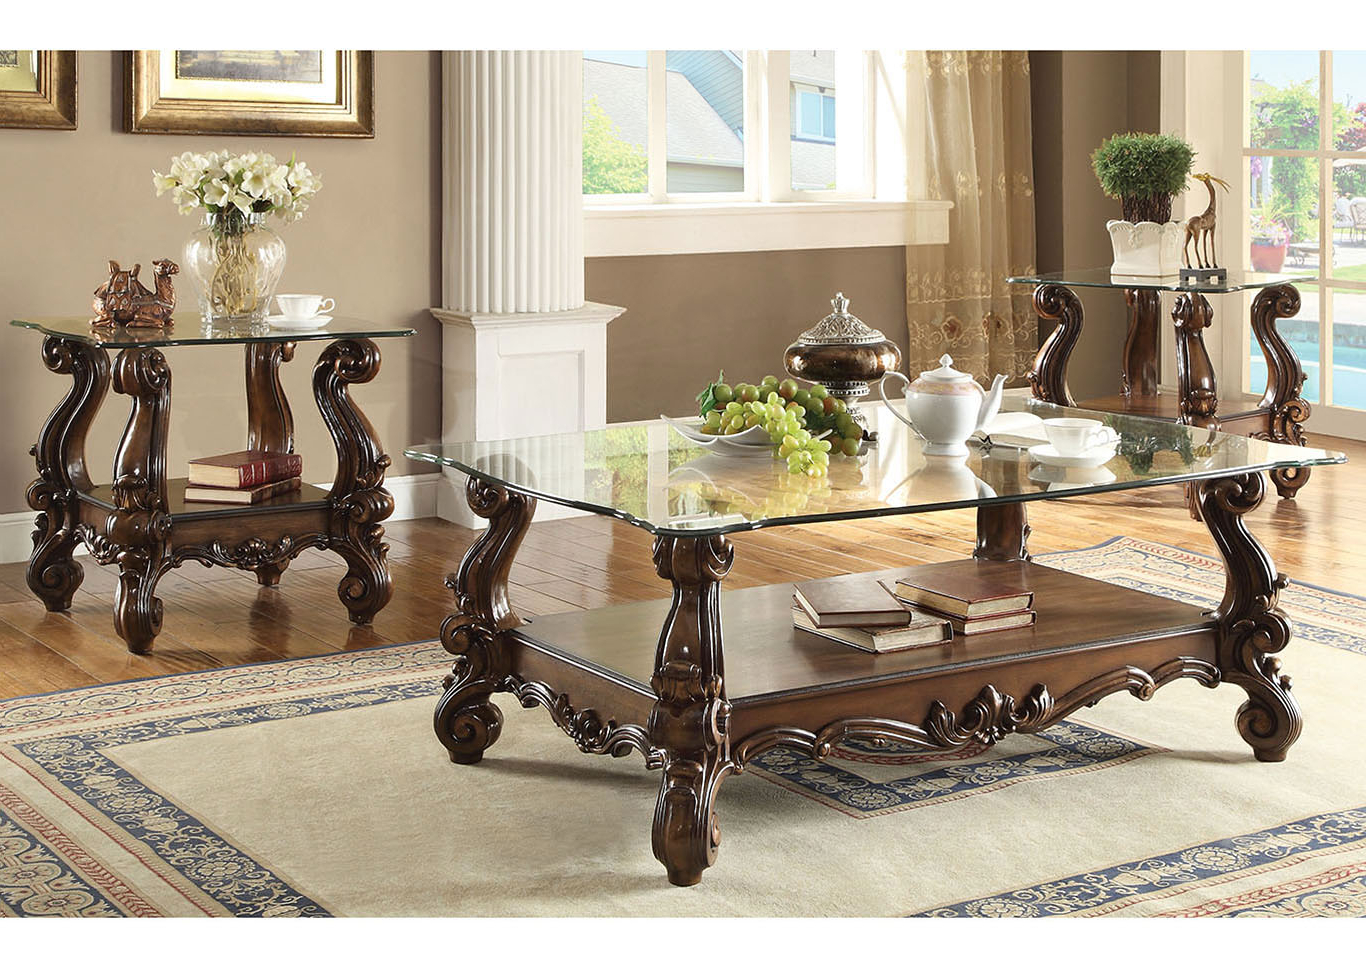 Just Furniture Versailles Cherry Oak & Clear Glass Coffee Table Regarding 2019 Furniture Of America Crescent Dark Cherry Glass Top Oval Coffee Tables (Gallery 14 of 20)